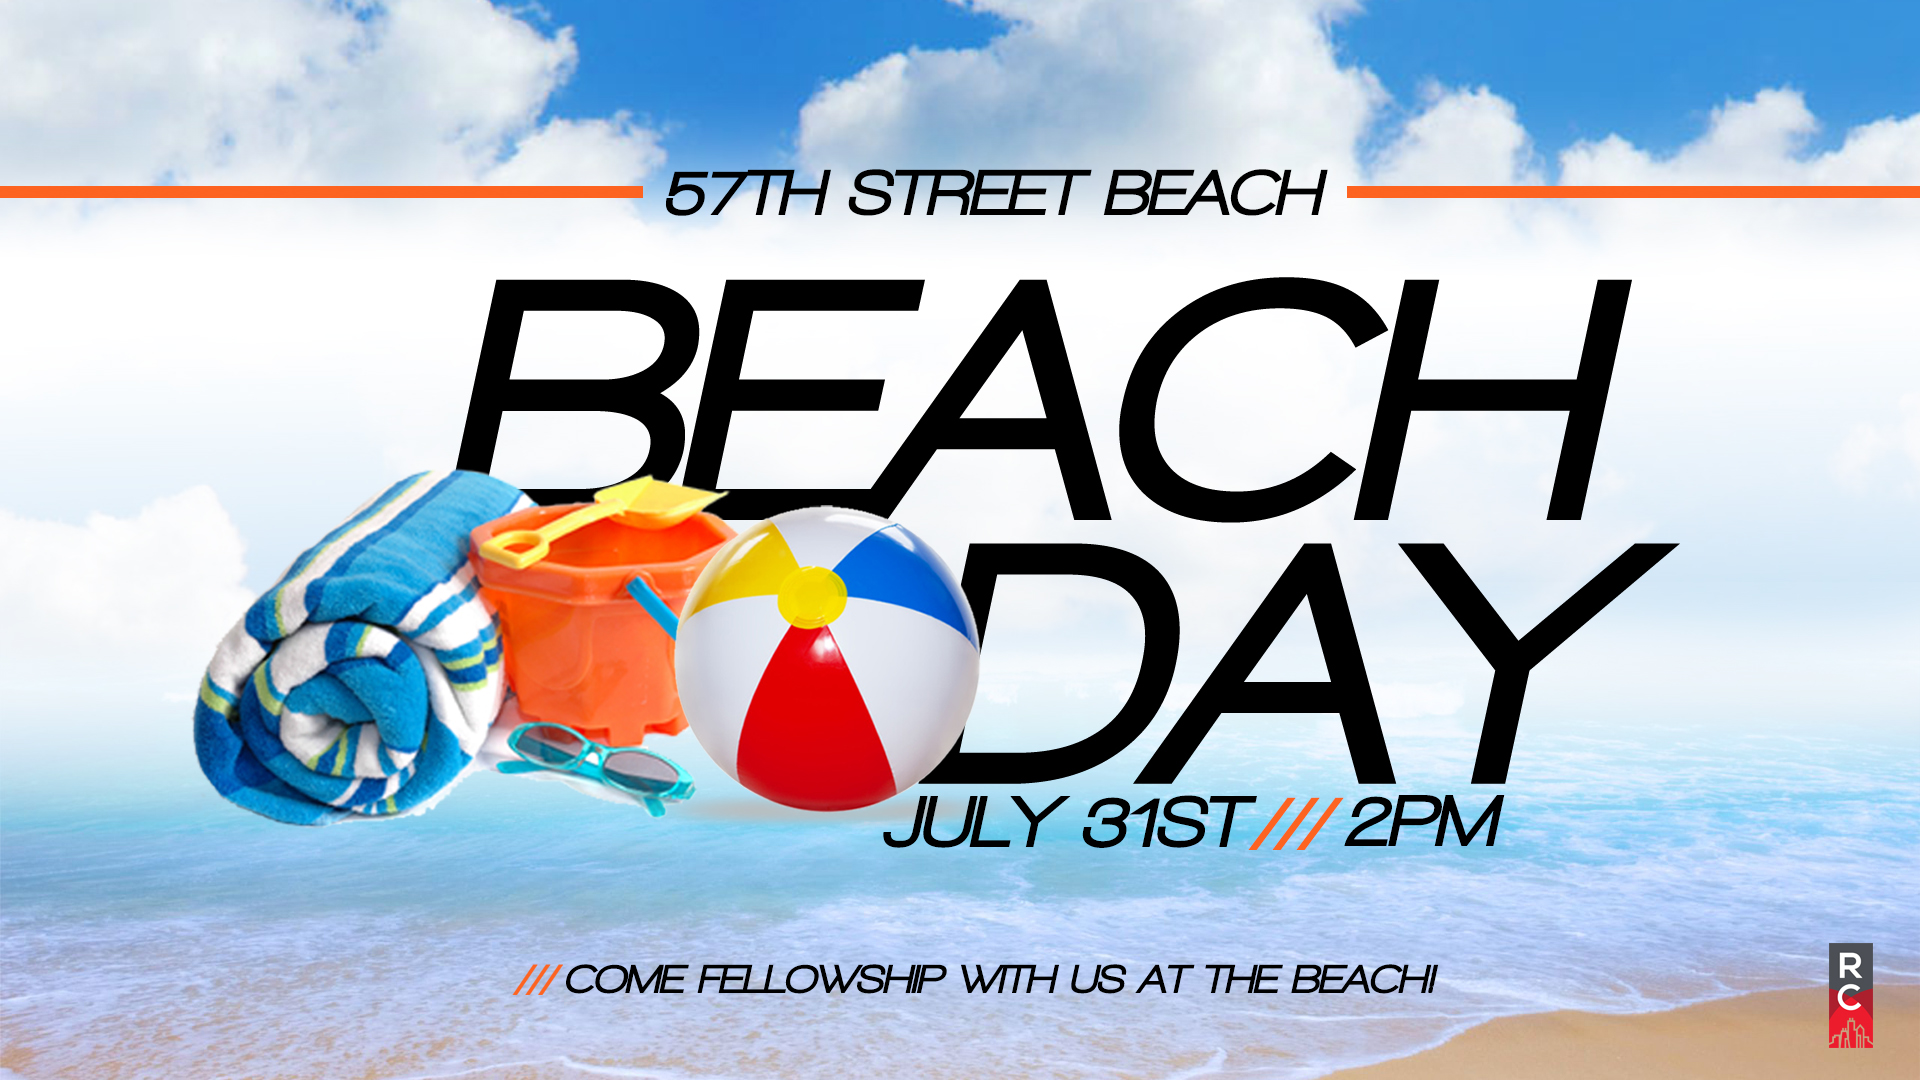 Come hang out and fellowship at the beach on Sunday afternoon! Bring a snack to share and come ready to have some fun in the sun!  Contact Sam at  sam.cralli@gmail.com  for details.